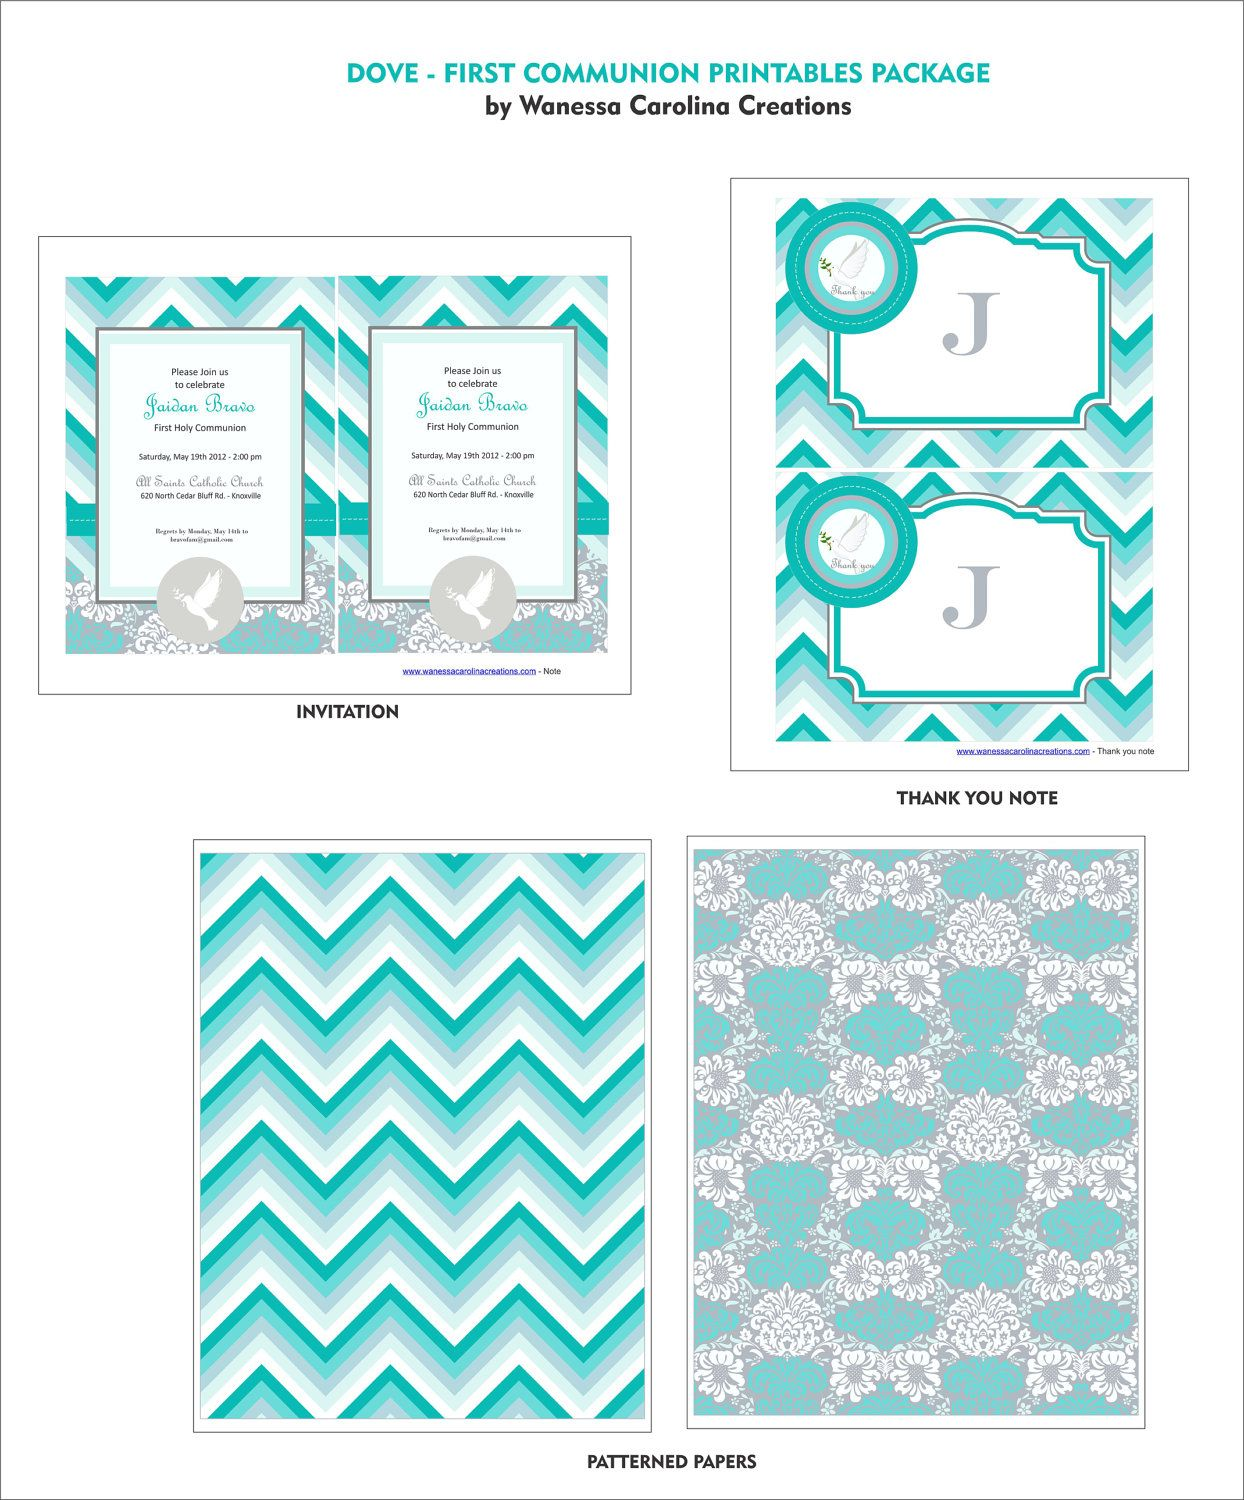 Dove First Communion Printables Package